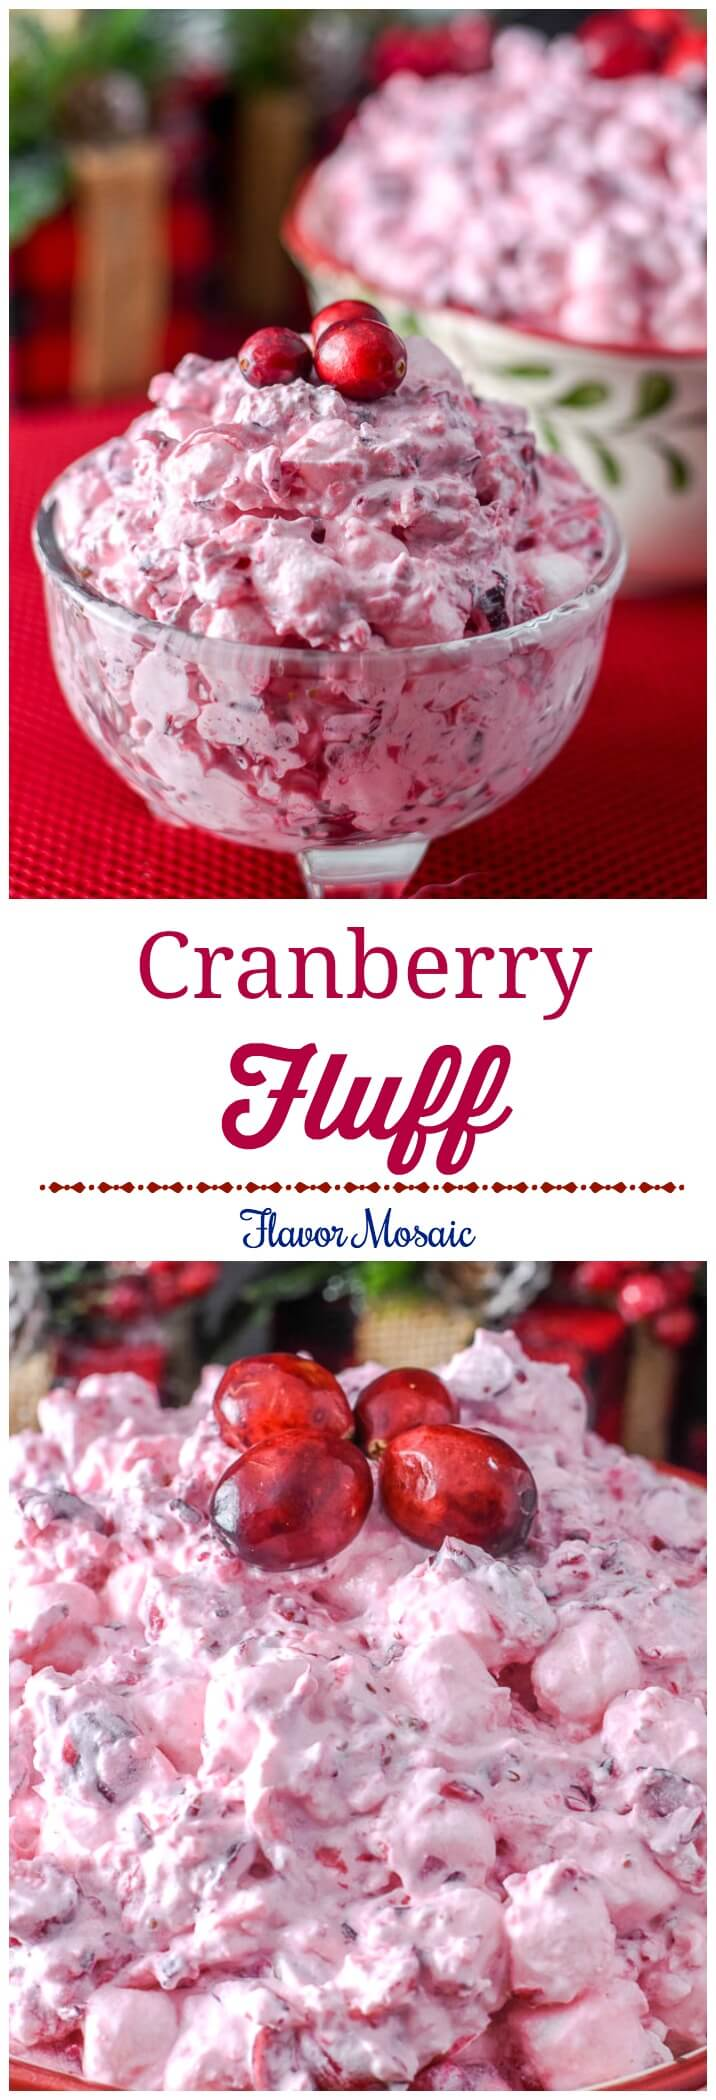 Cranberry Fluff Salad Dessert for Thanksgiving or Christmas holiday dinner - Flavor Mosaic